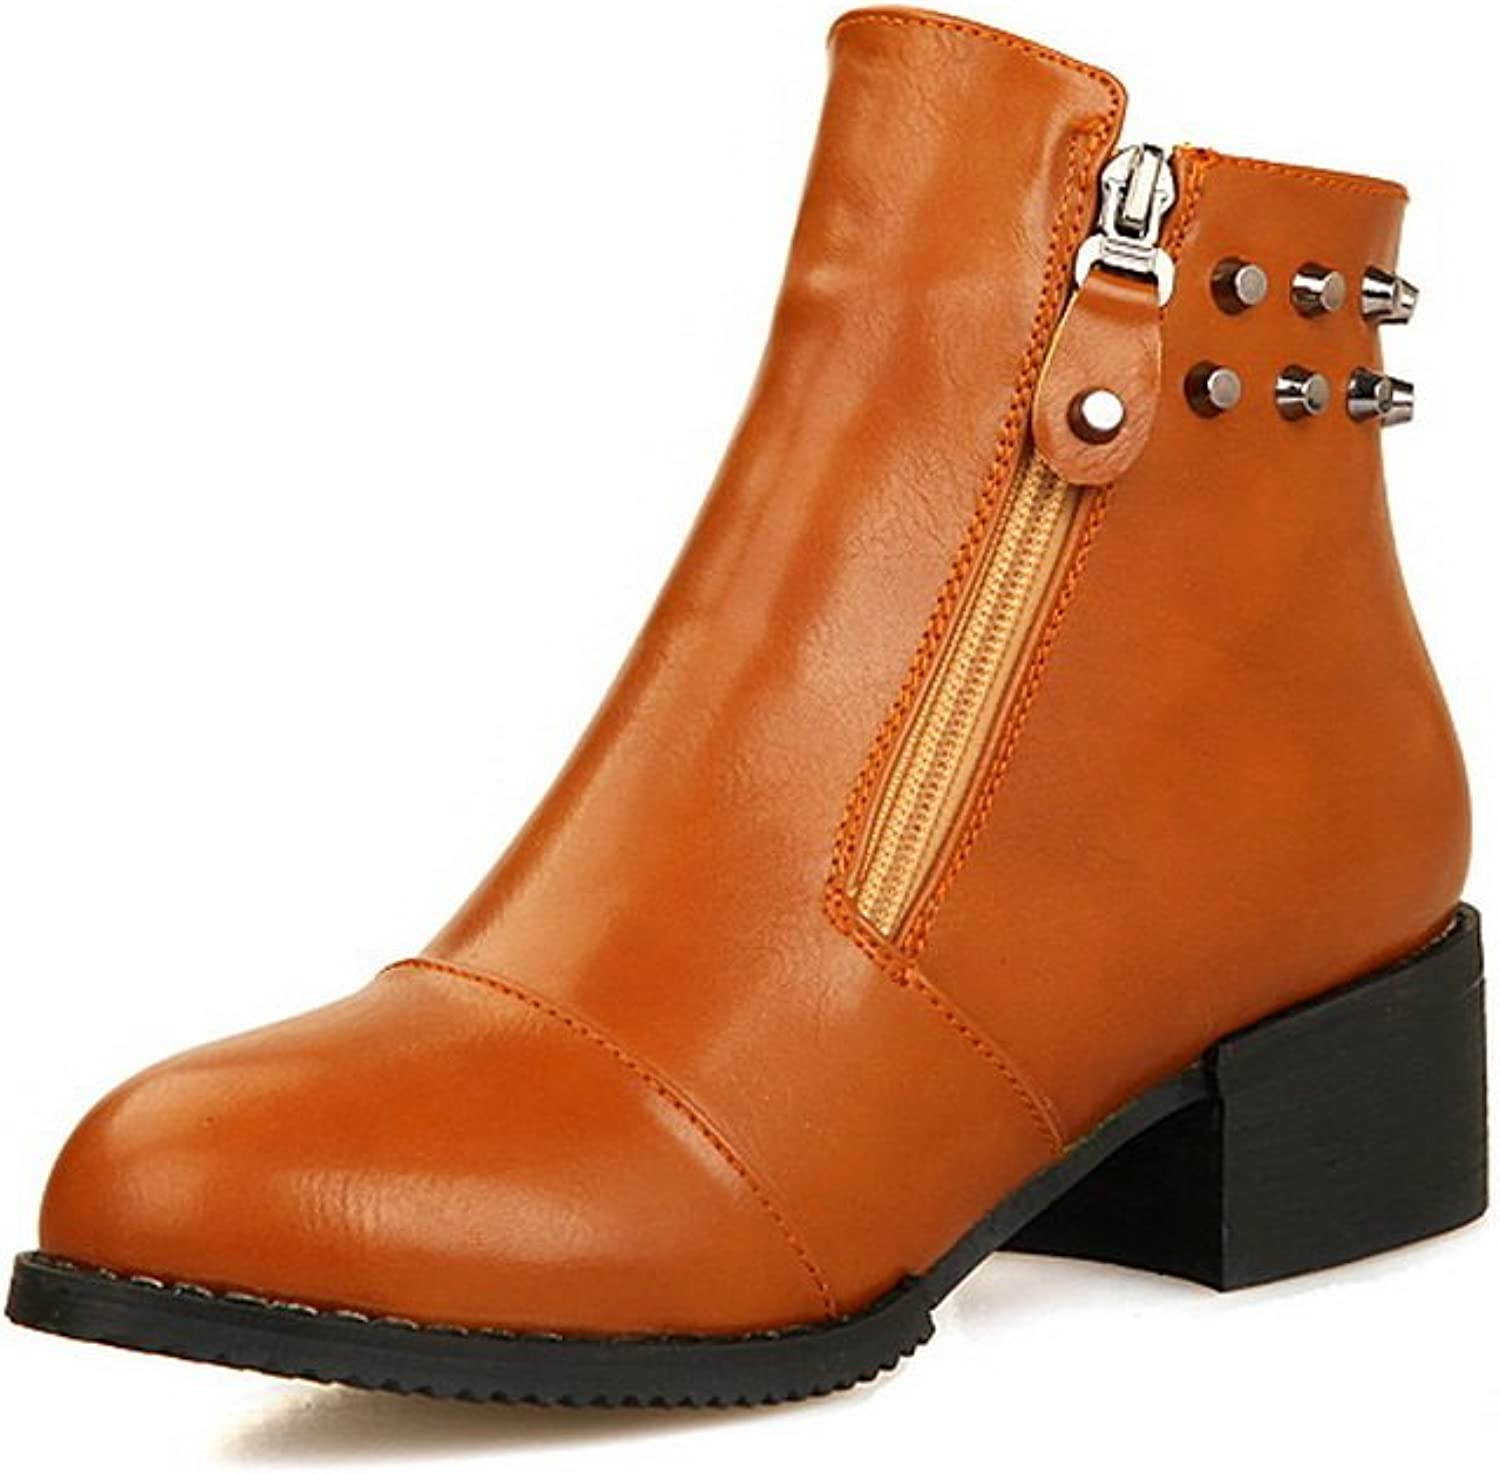 A&N Womens Square Heels Rivet Round Toe Imitated Leather Boots